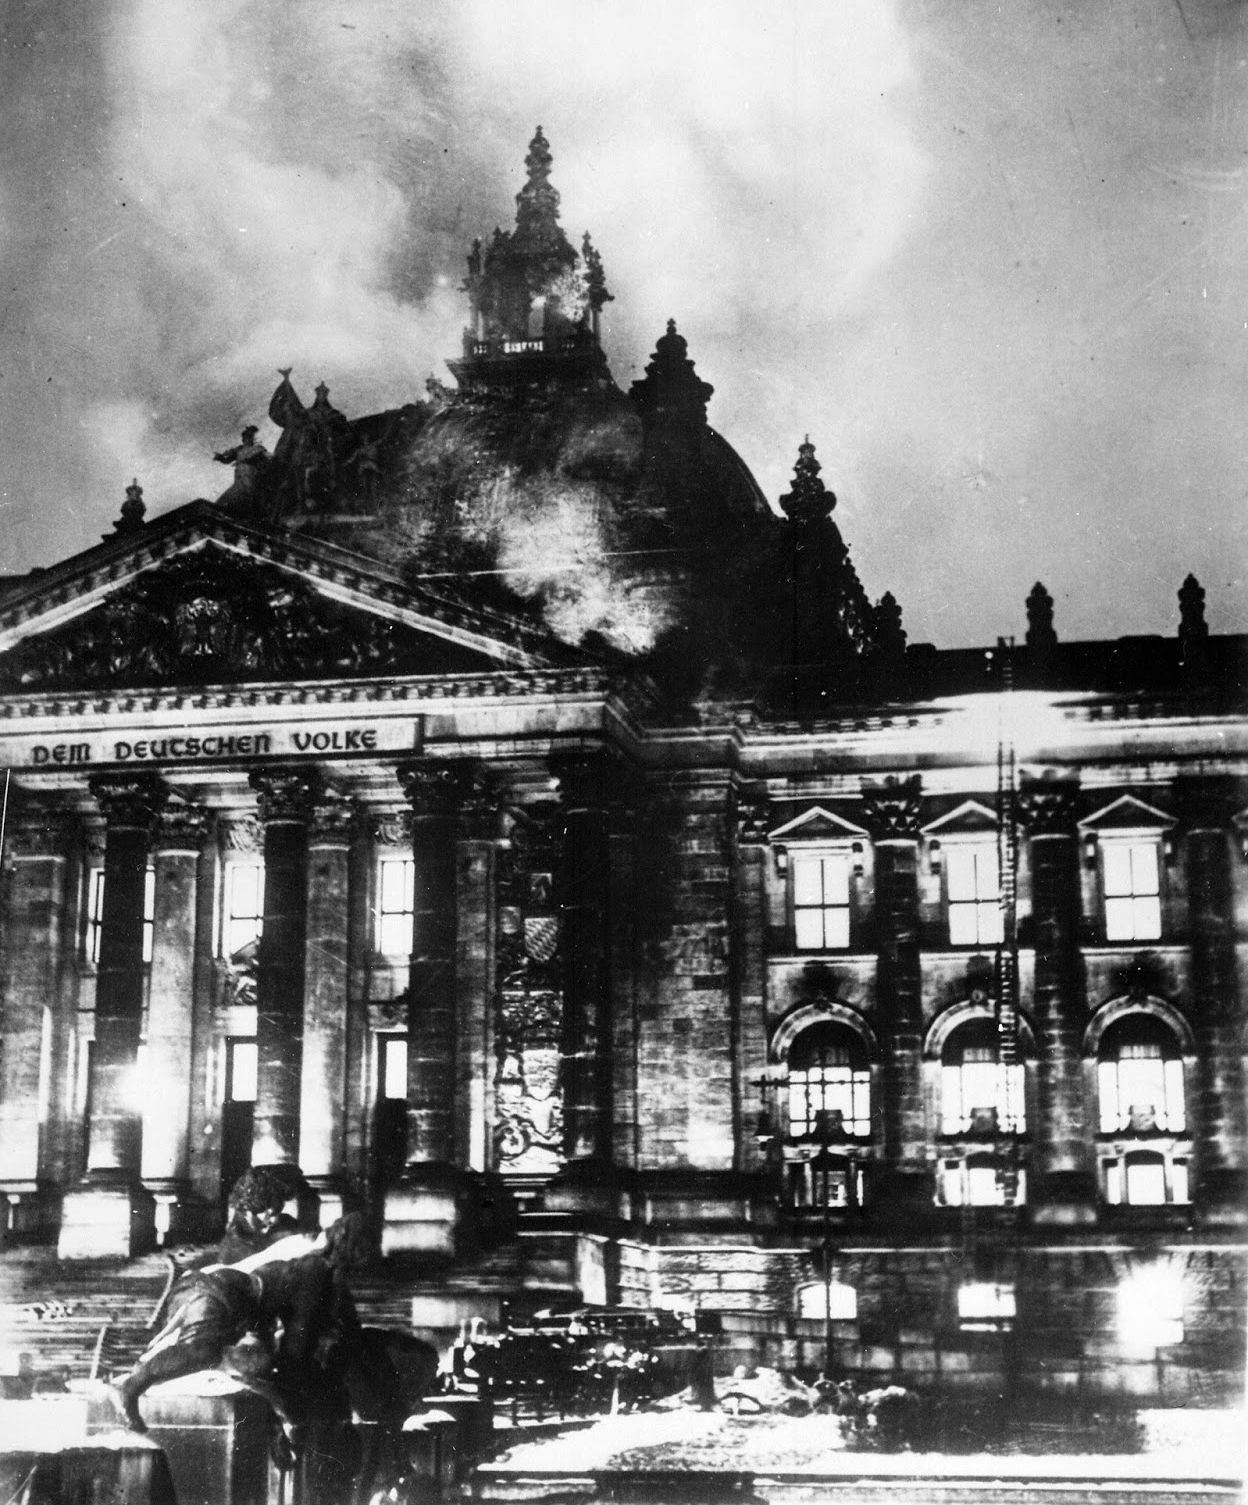 No comment - Reichstag, Berlin